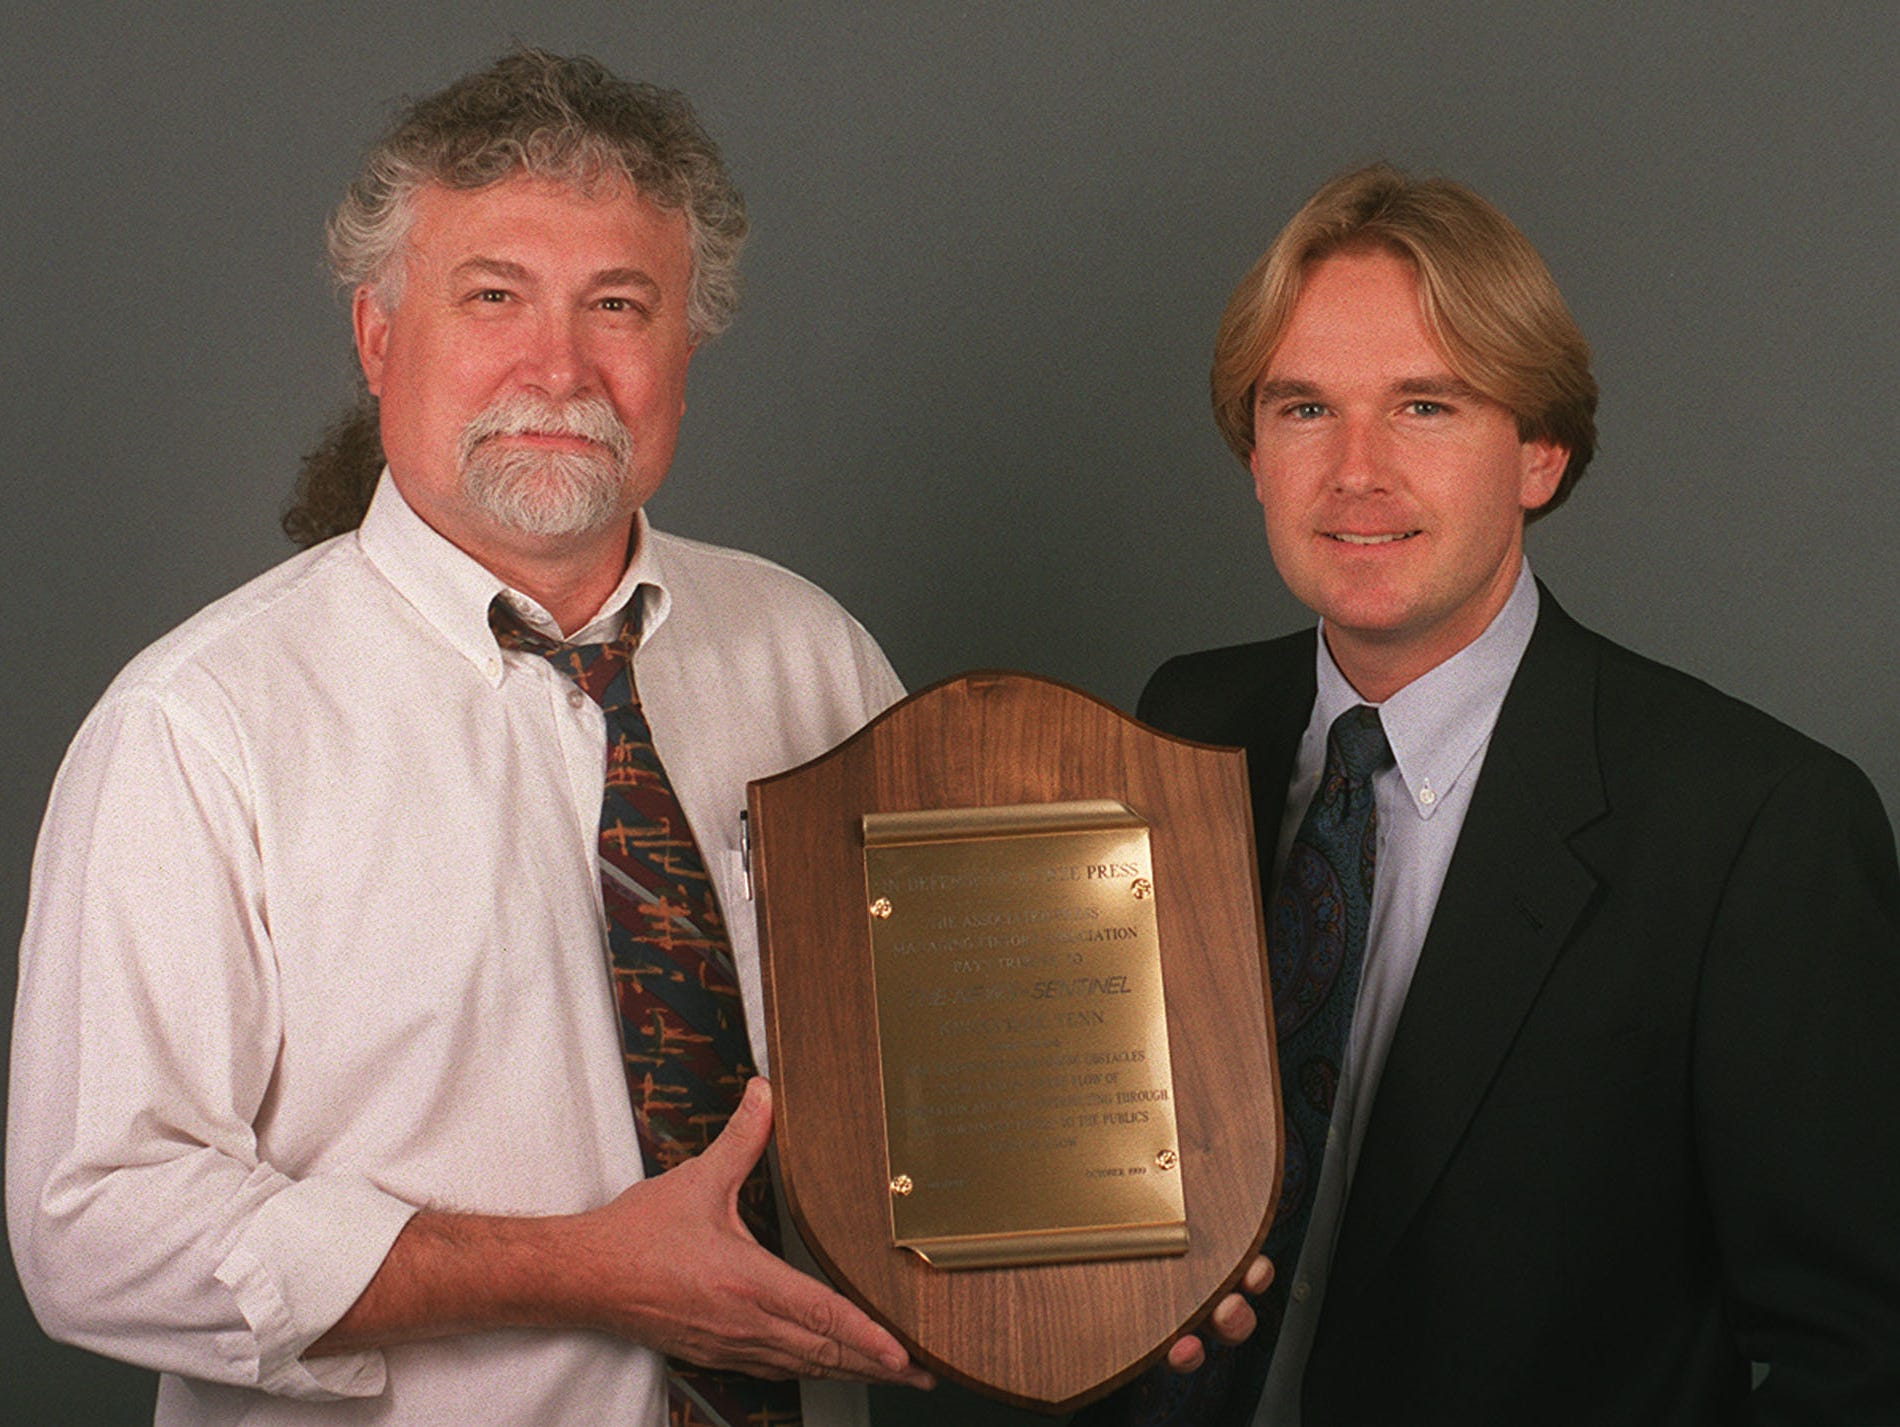 Knoxville News-Sentinel Assistant Managing Editor Tom Chester, left, and reporter John North are pictured with the Associated Press Managing Editors Association's Freedom of Information Award on Oct. 22, 1999. The APME selected the News-Sentinel from among 10 finalists nationwide for the annual award, citing the paper for publishing information obtained from court records about serial killer Thomas D. Huskey's court-appointed defense.